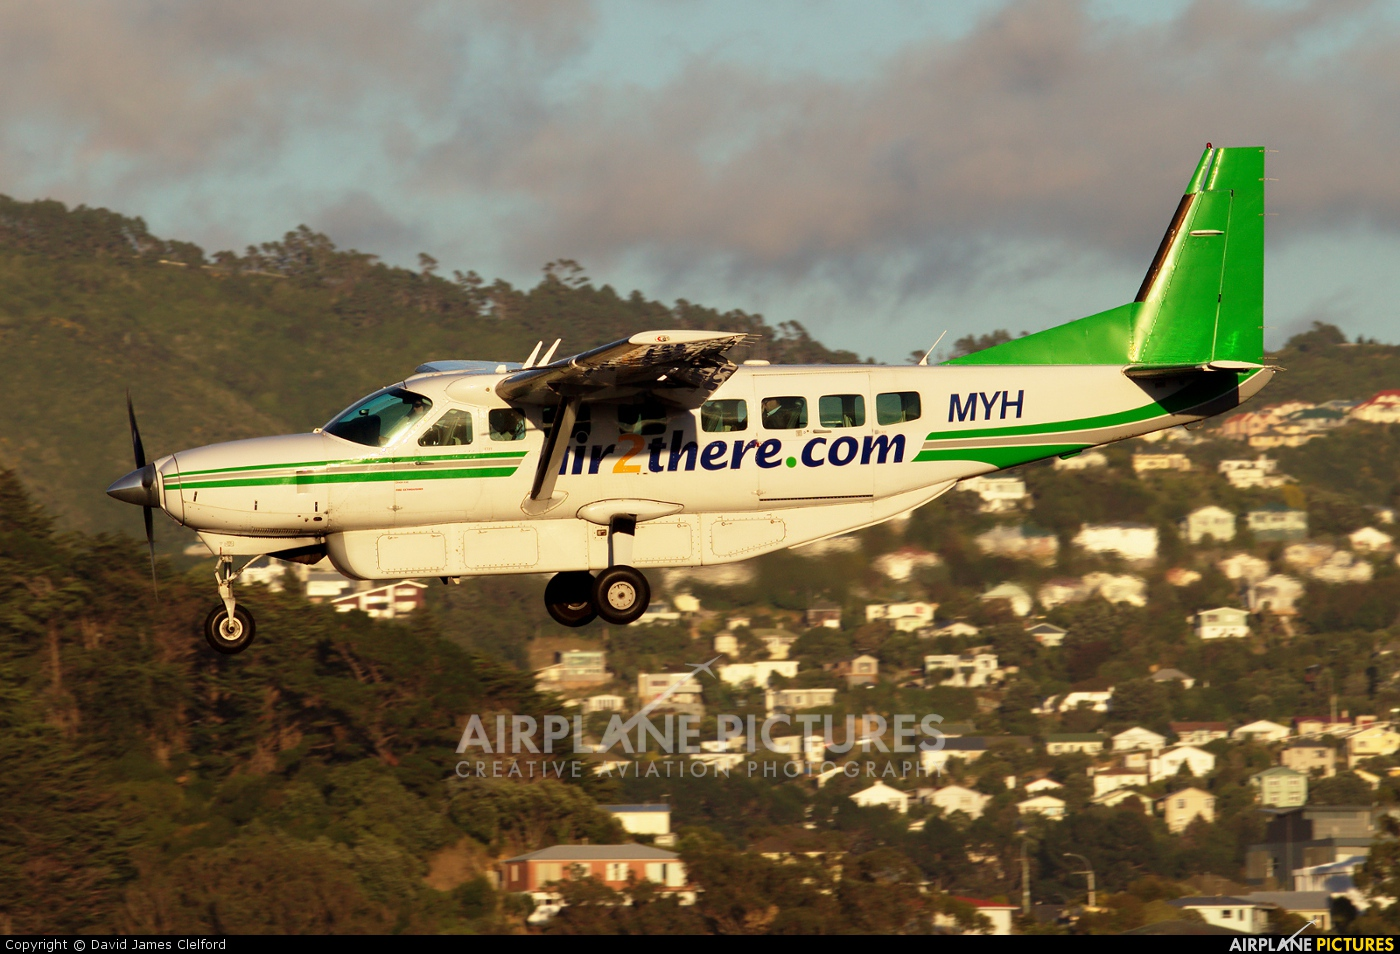 Air2there.com ZK-MYH aircraft at Wellington Intl